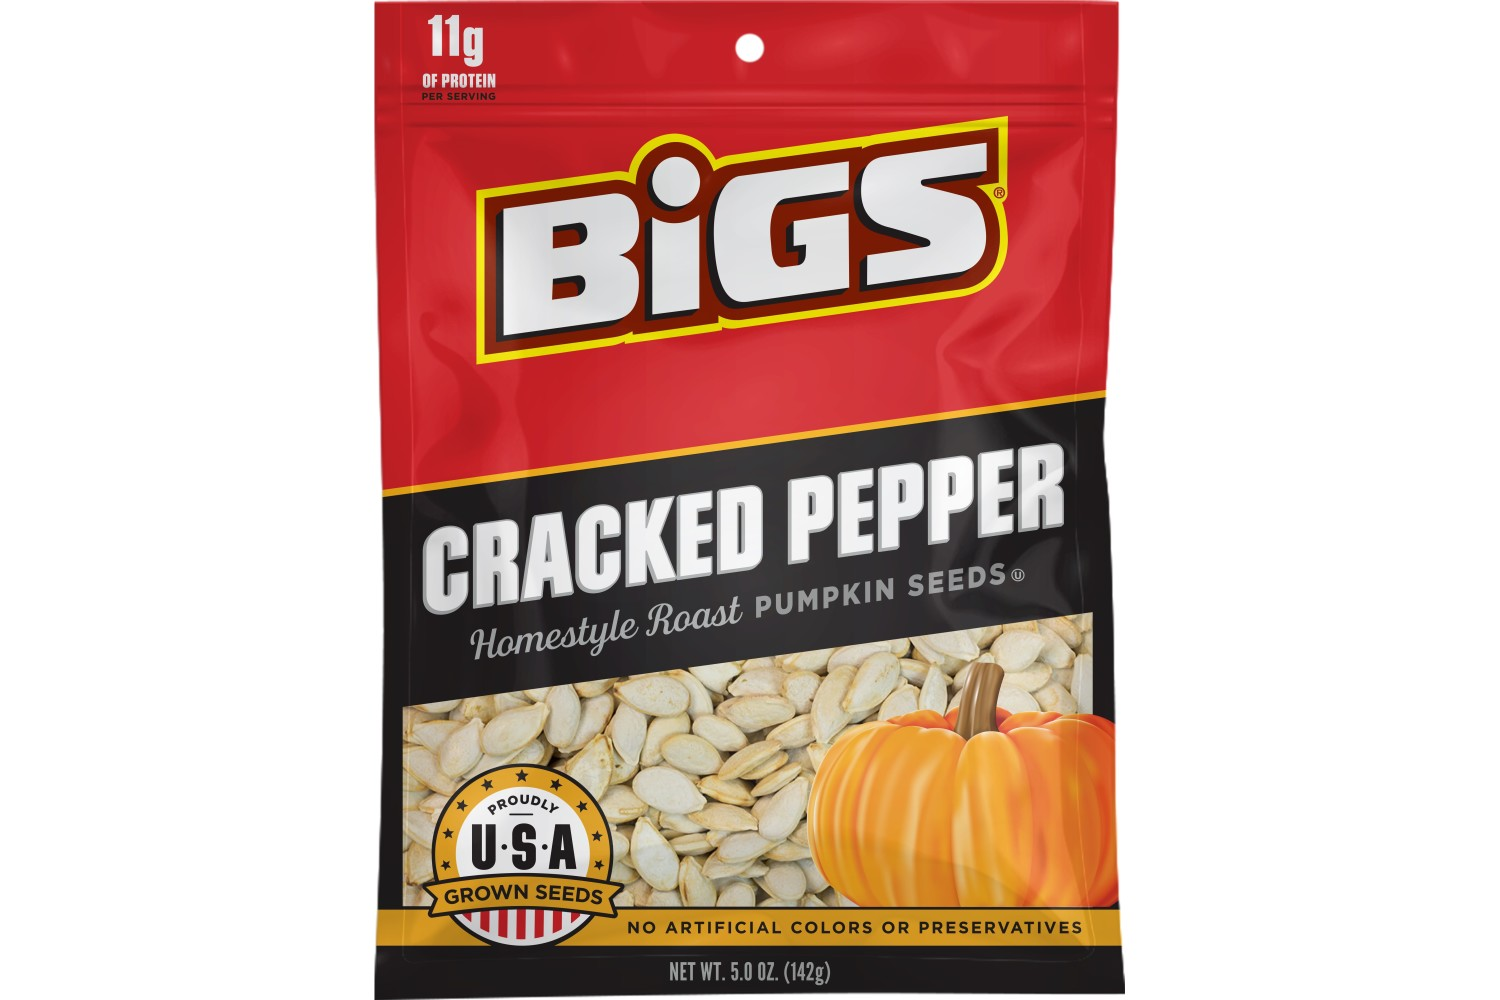 BIGS Cracked Pepper Pumpkin Seeds